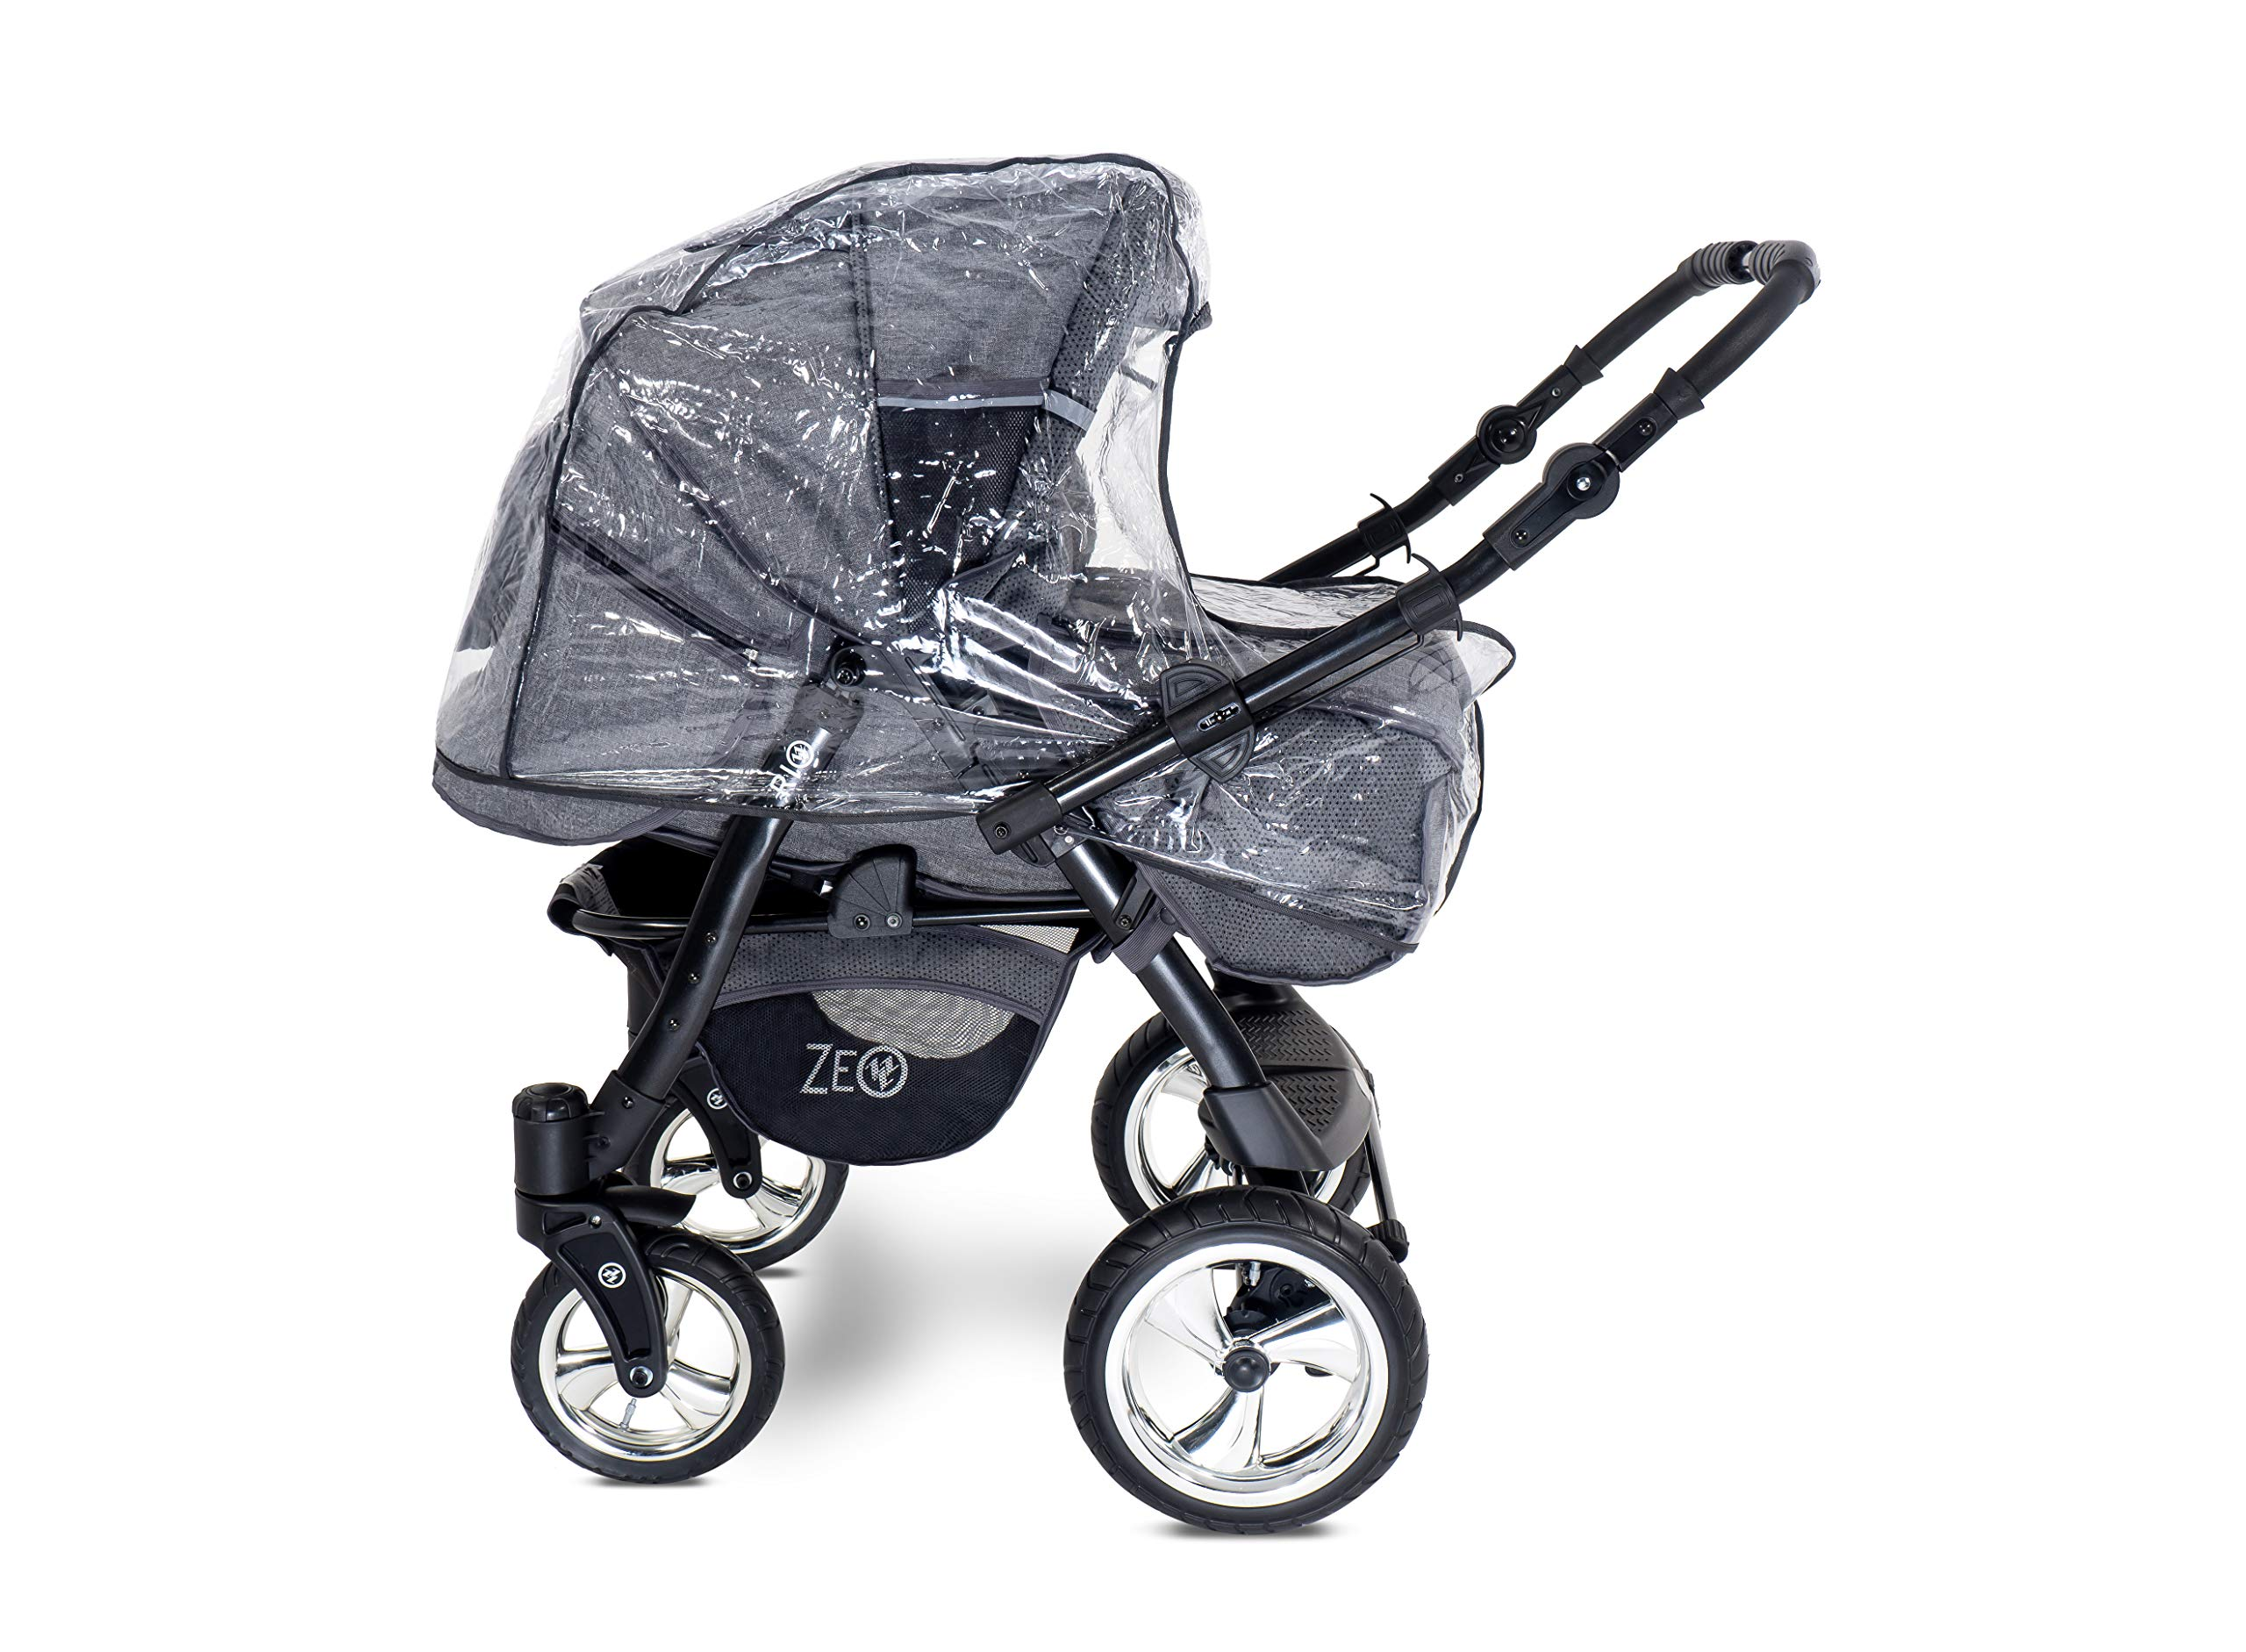 Baby Pram Zeo Rio 3in1 Set - All You Need! carrycot Gondola Buggy Pushchair car seat (R3) Zeo 3 in 1 combination stroller complete set, with reversible handle to the buggy, child car seat or baby carriage Has 360 ° swiveling wheels, two-fold suspension, four-stage backrest, five-position adjustable footrest and a five-point safety belt The stroller can be easily converted into other functions and easy to transport 7